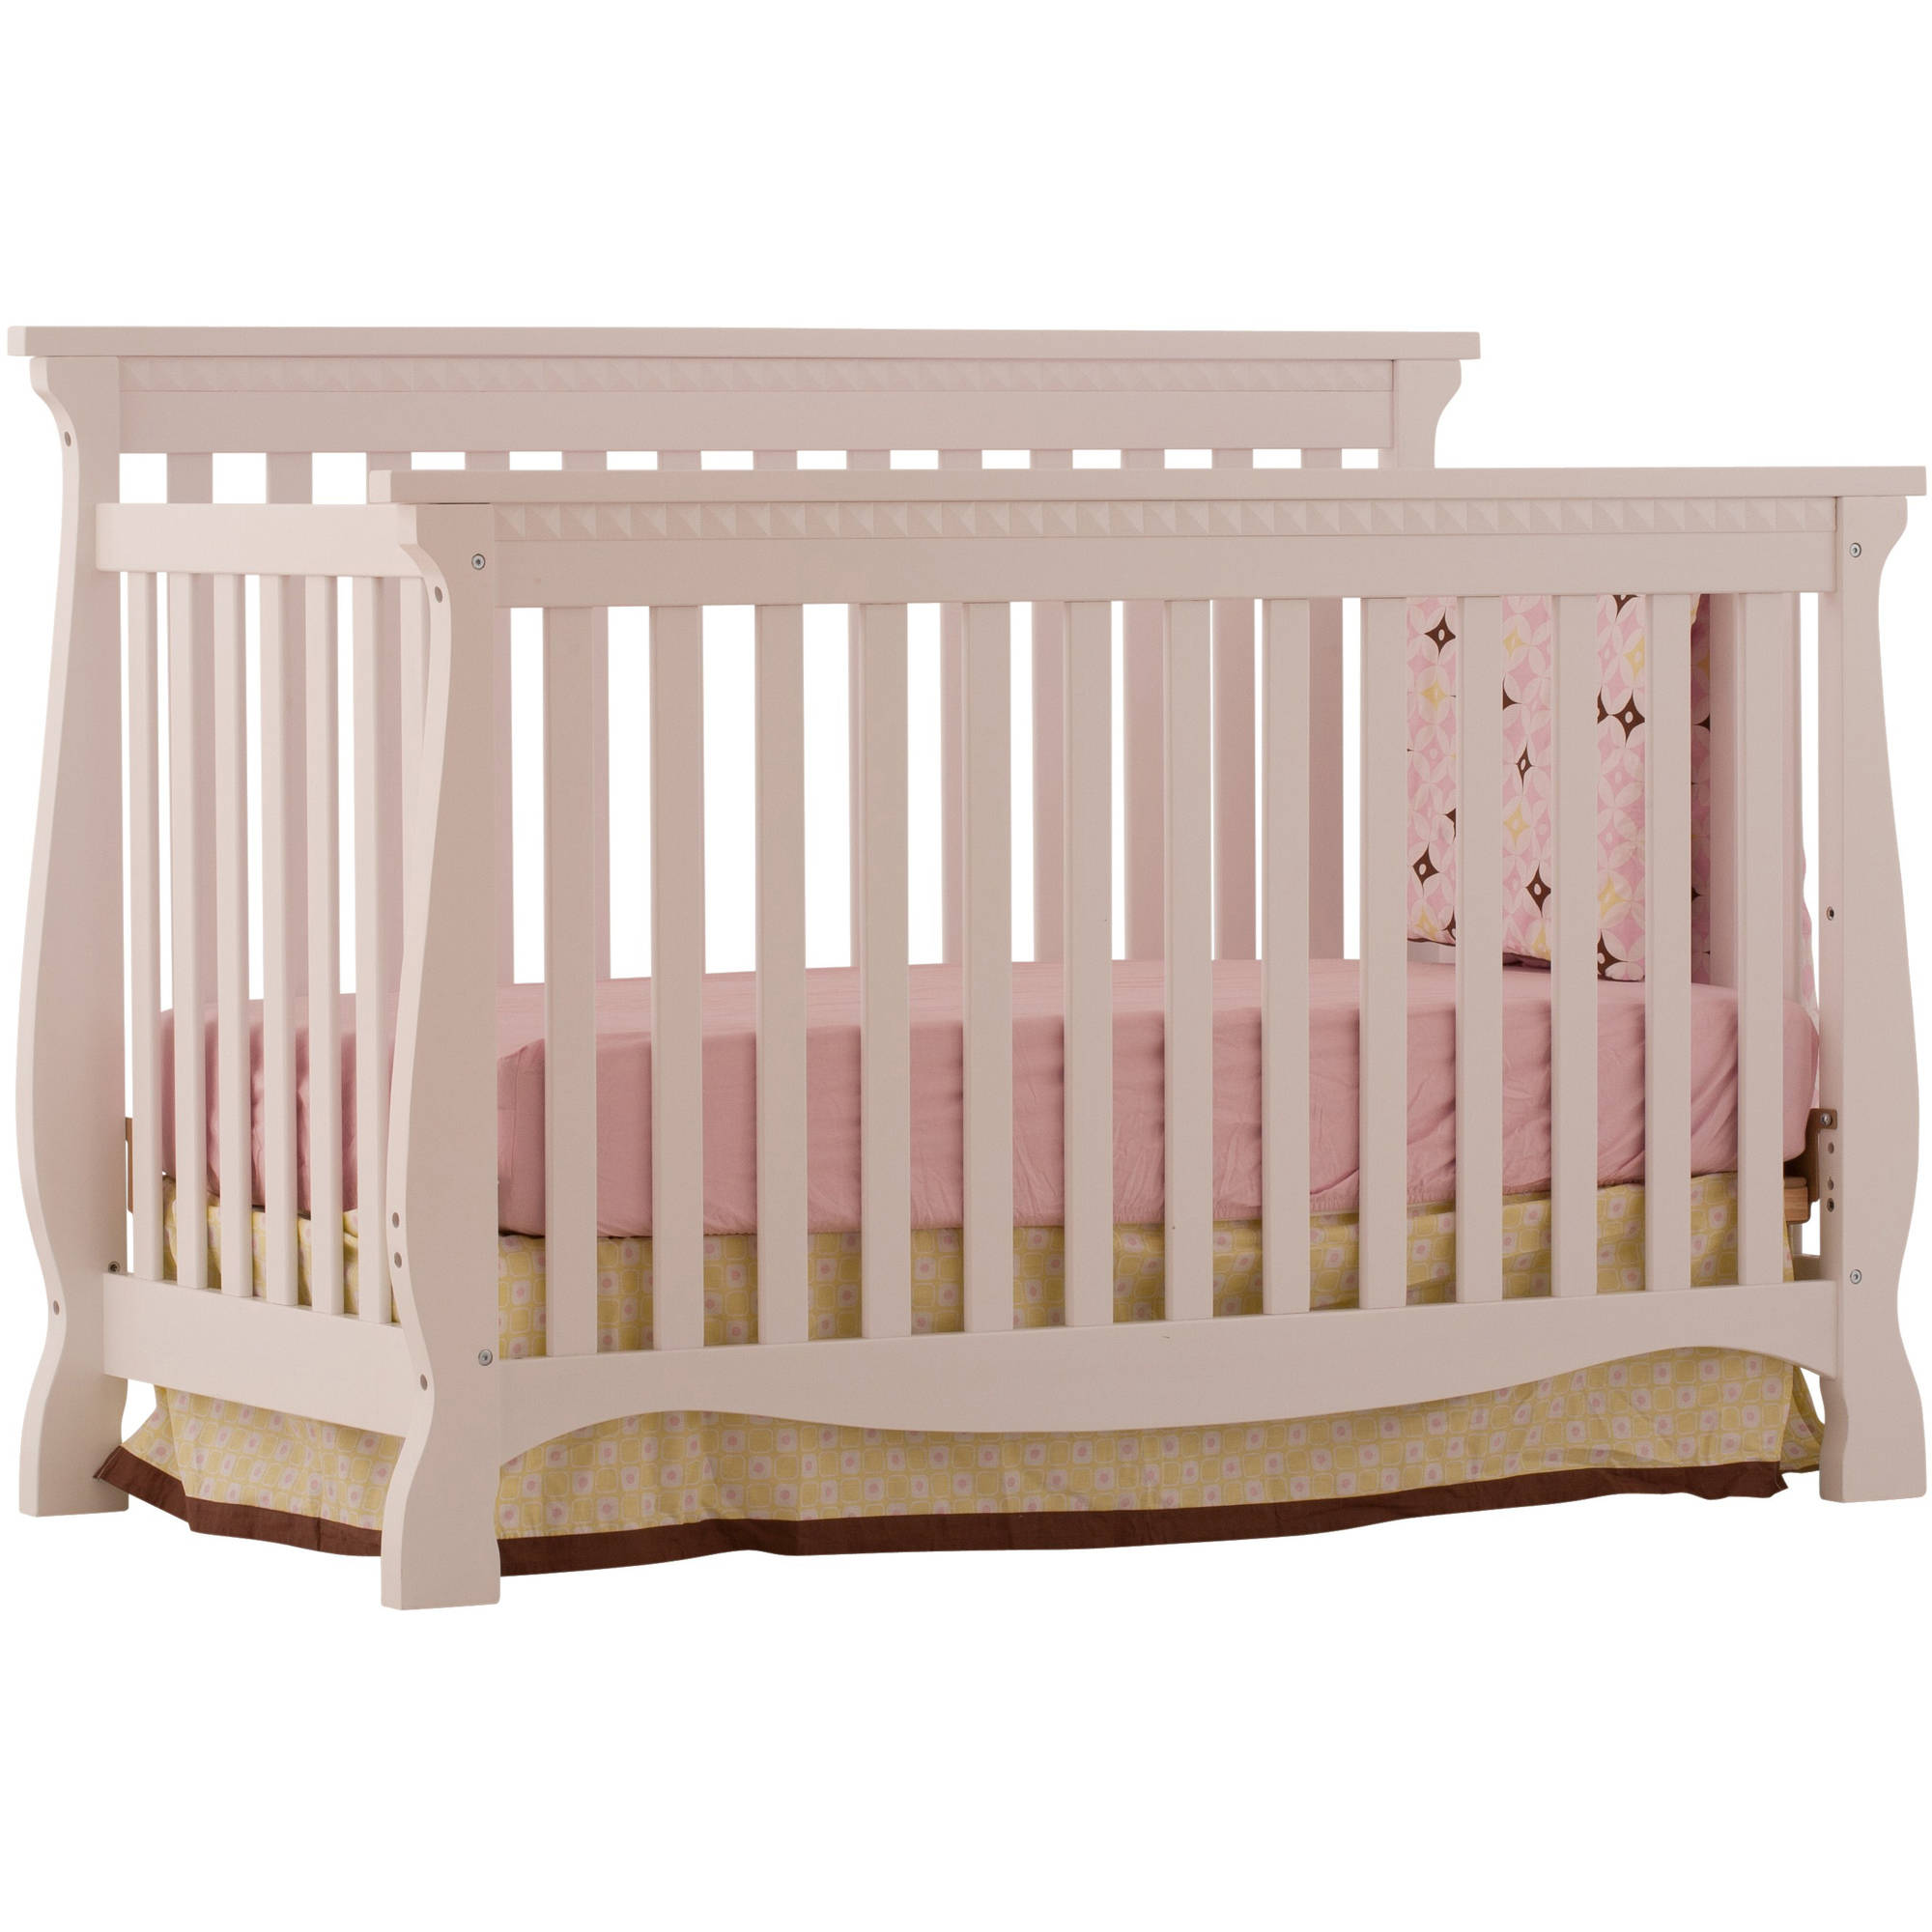 storkcraft venetian 4 in 1 convertible crib white